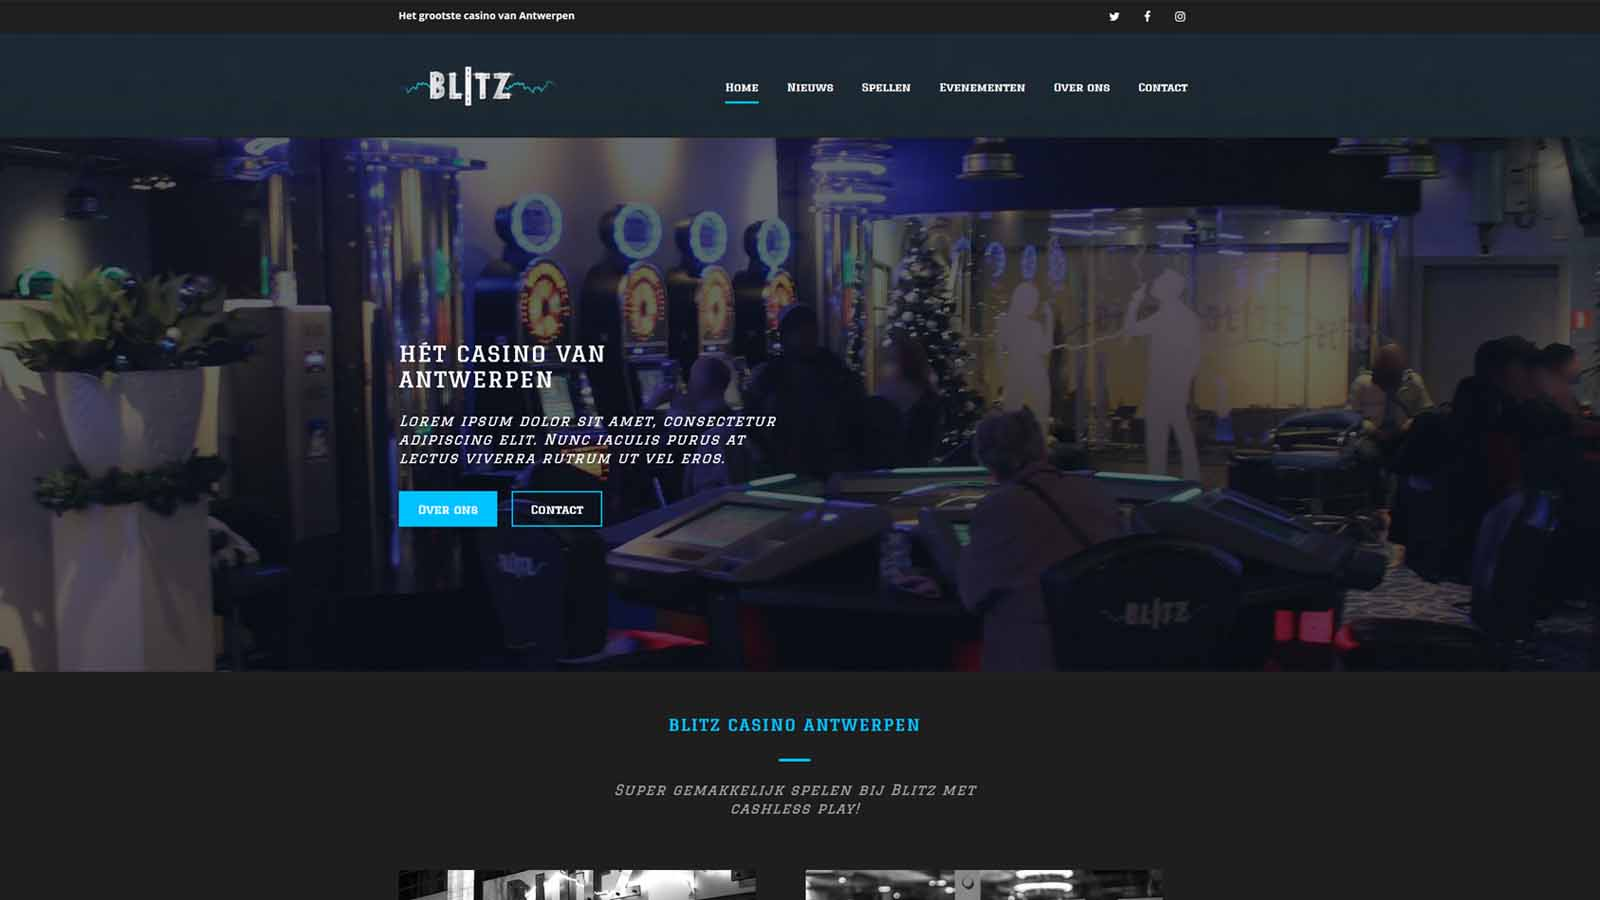 - blitz c - Websites